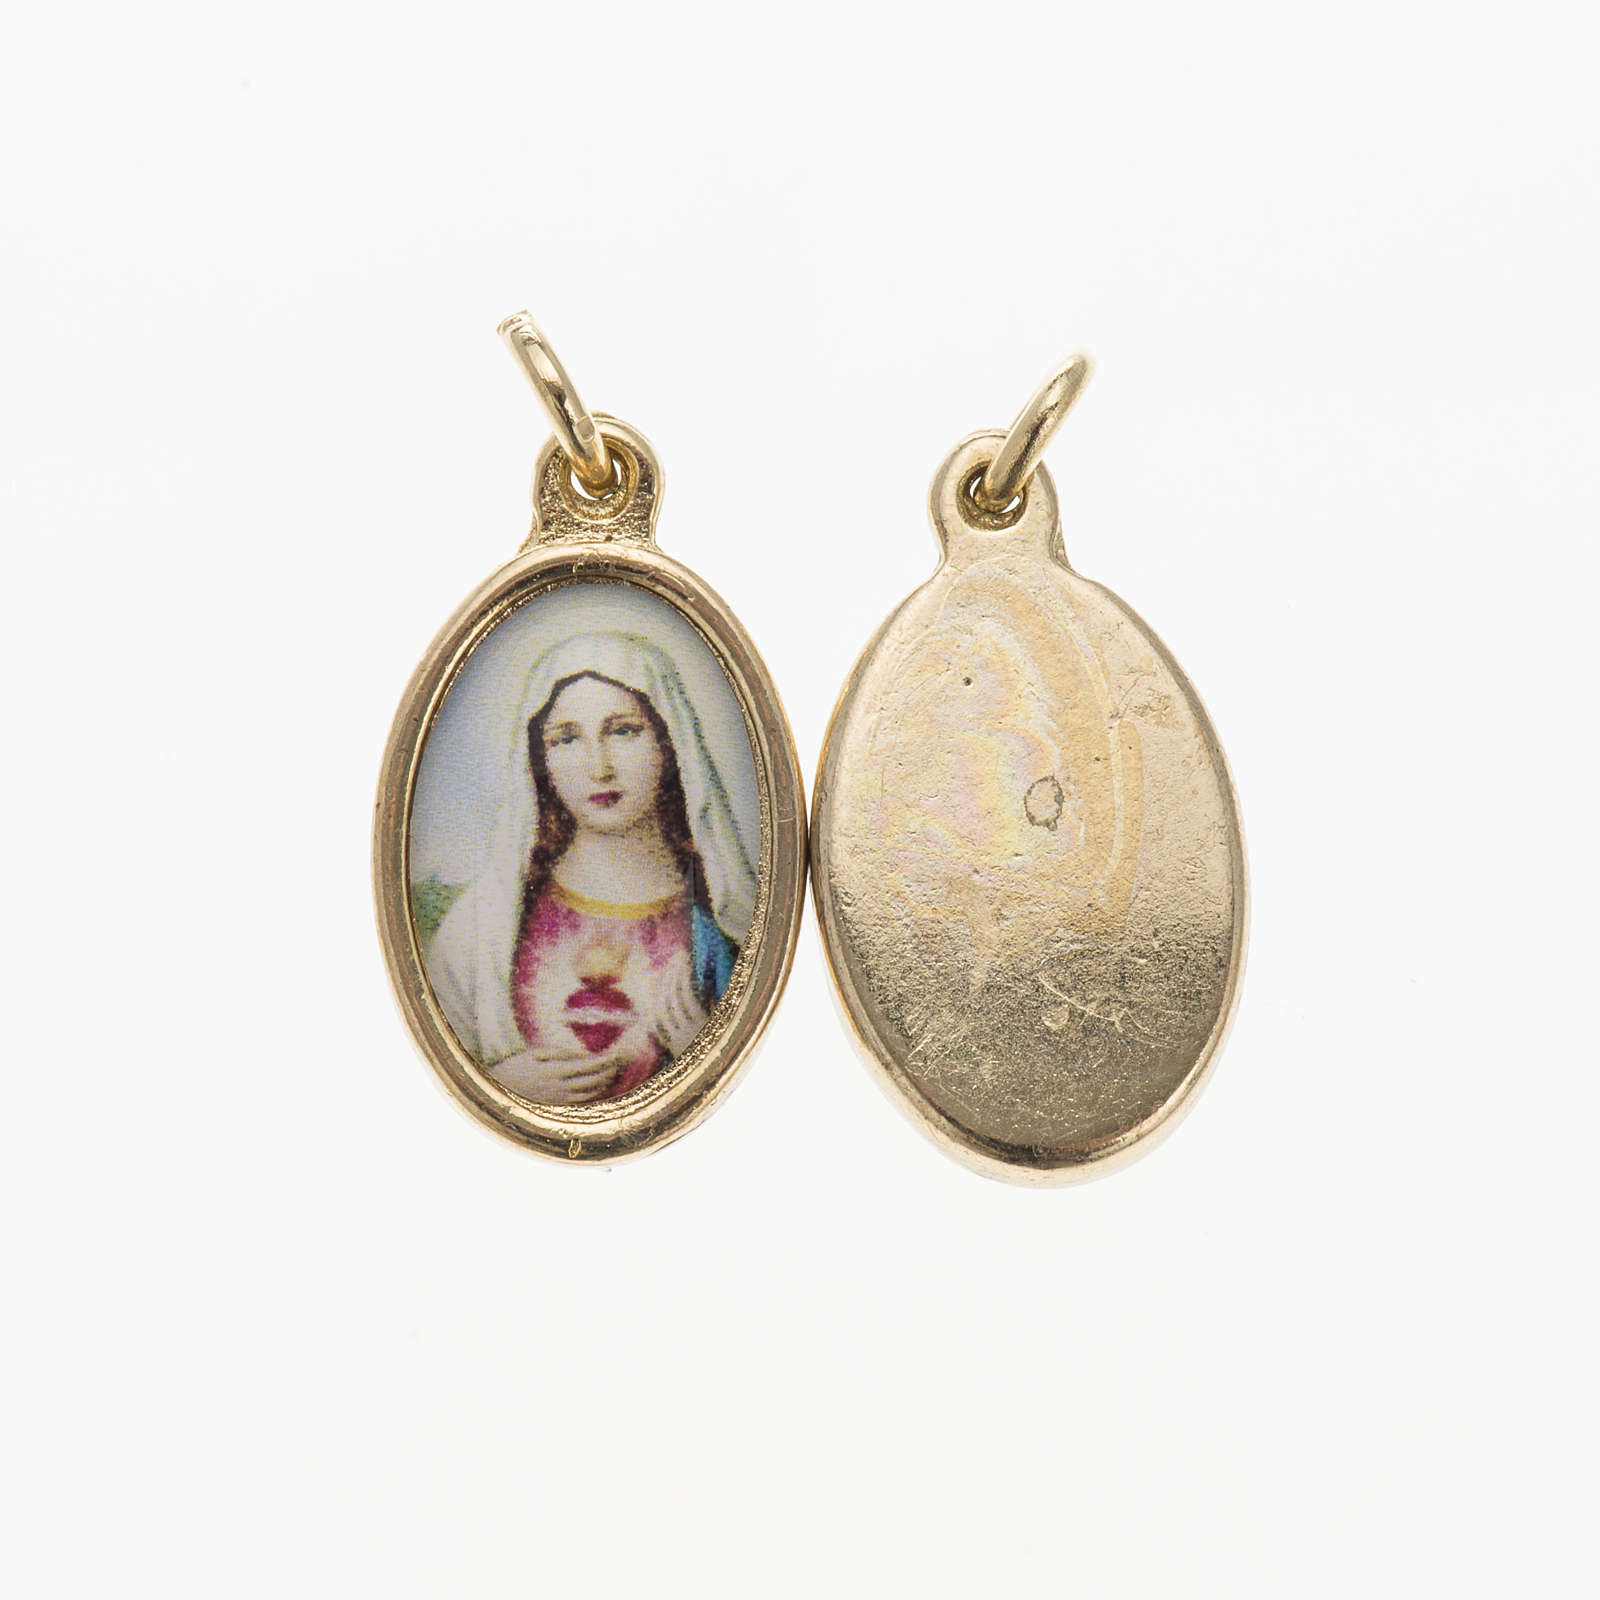 Sacred Heart of Mary medal in golden metal and resin 1.5x1cm 4